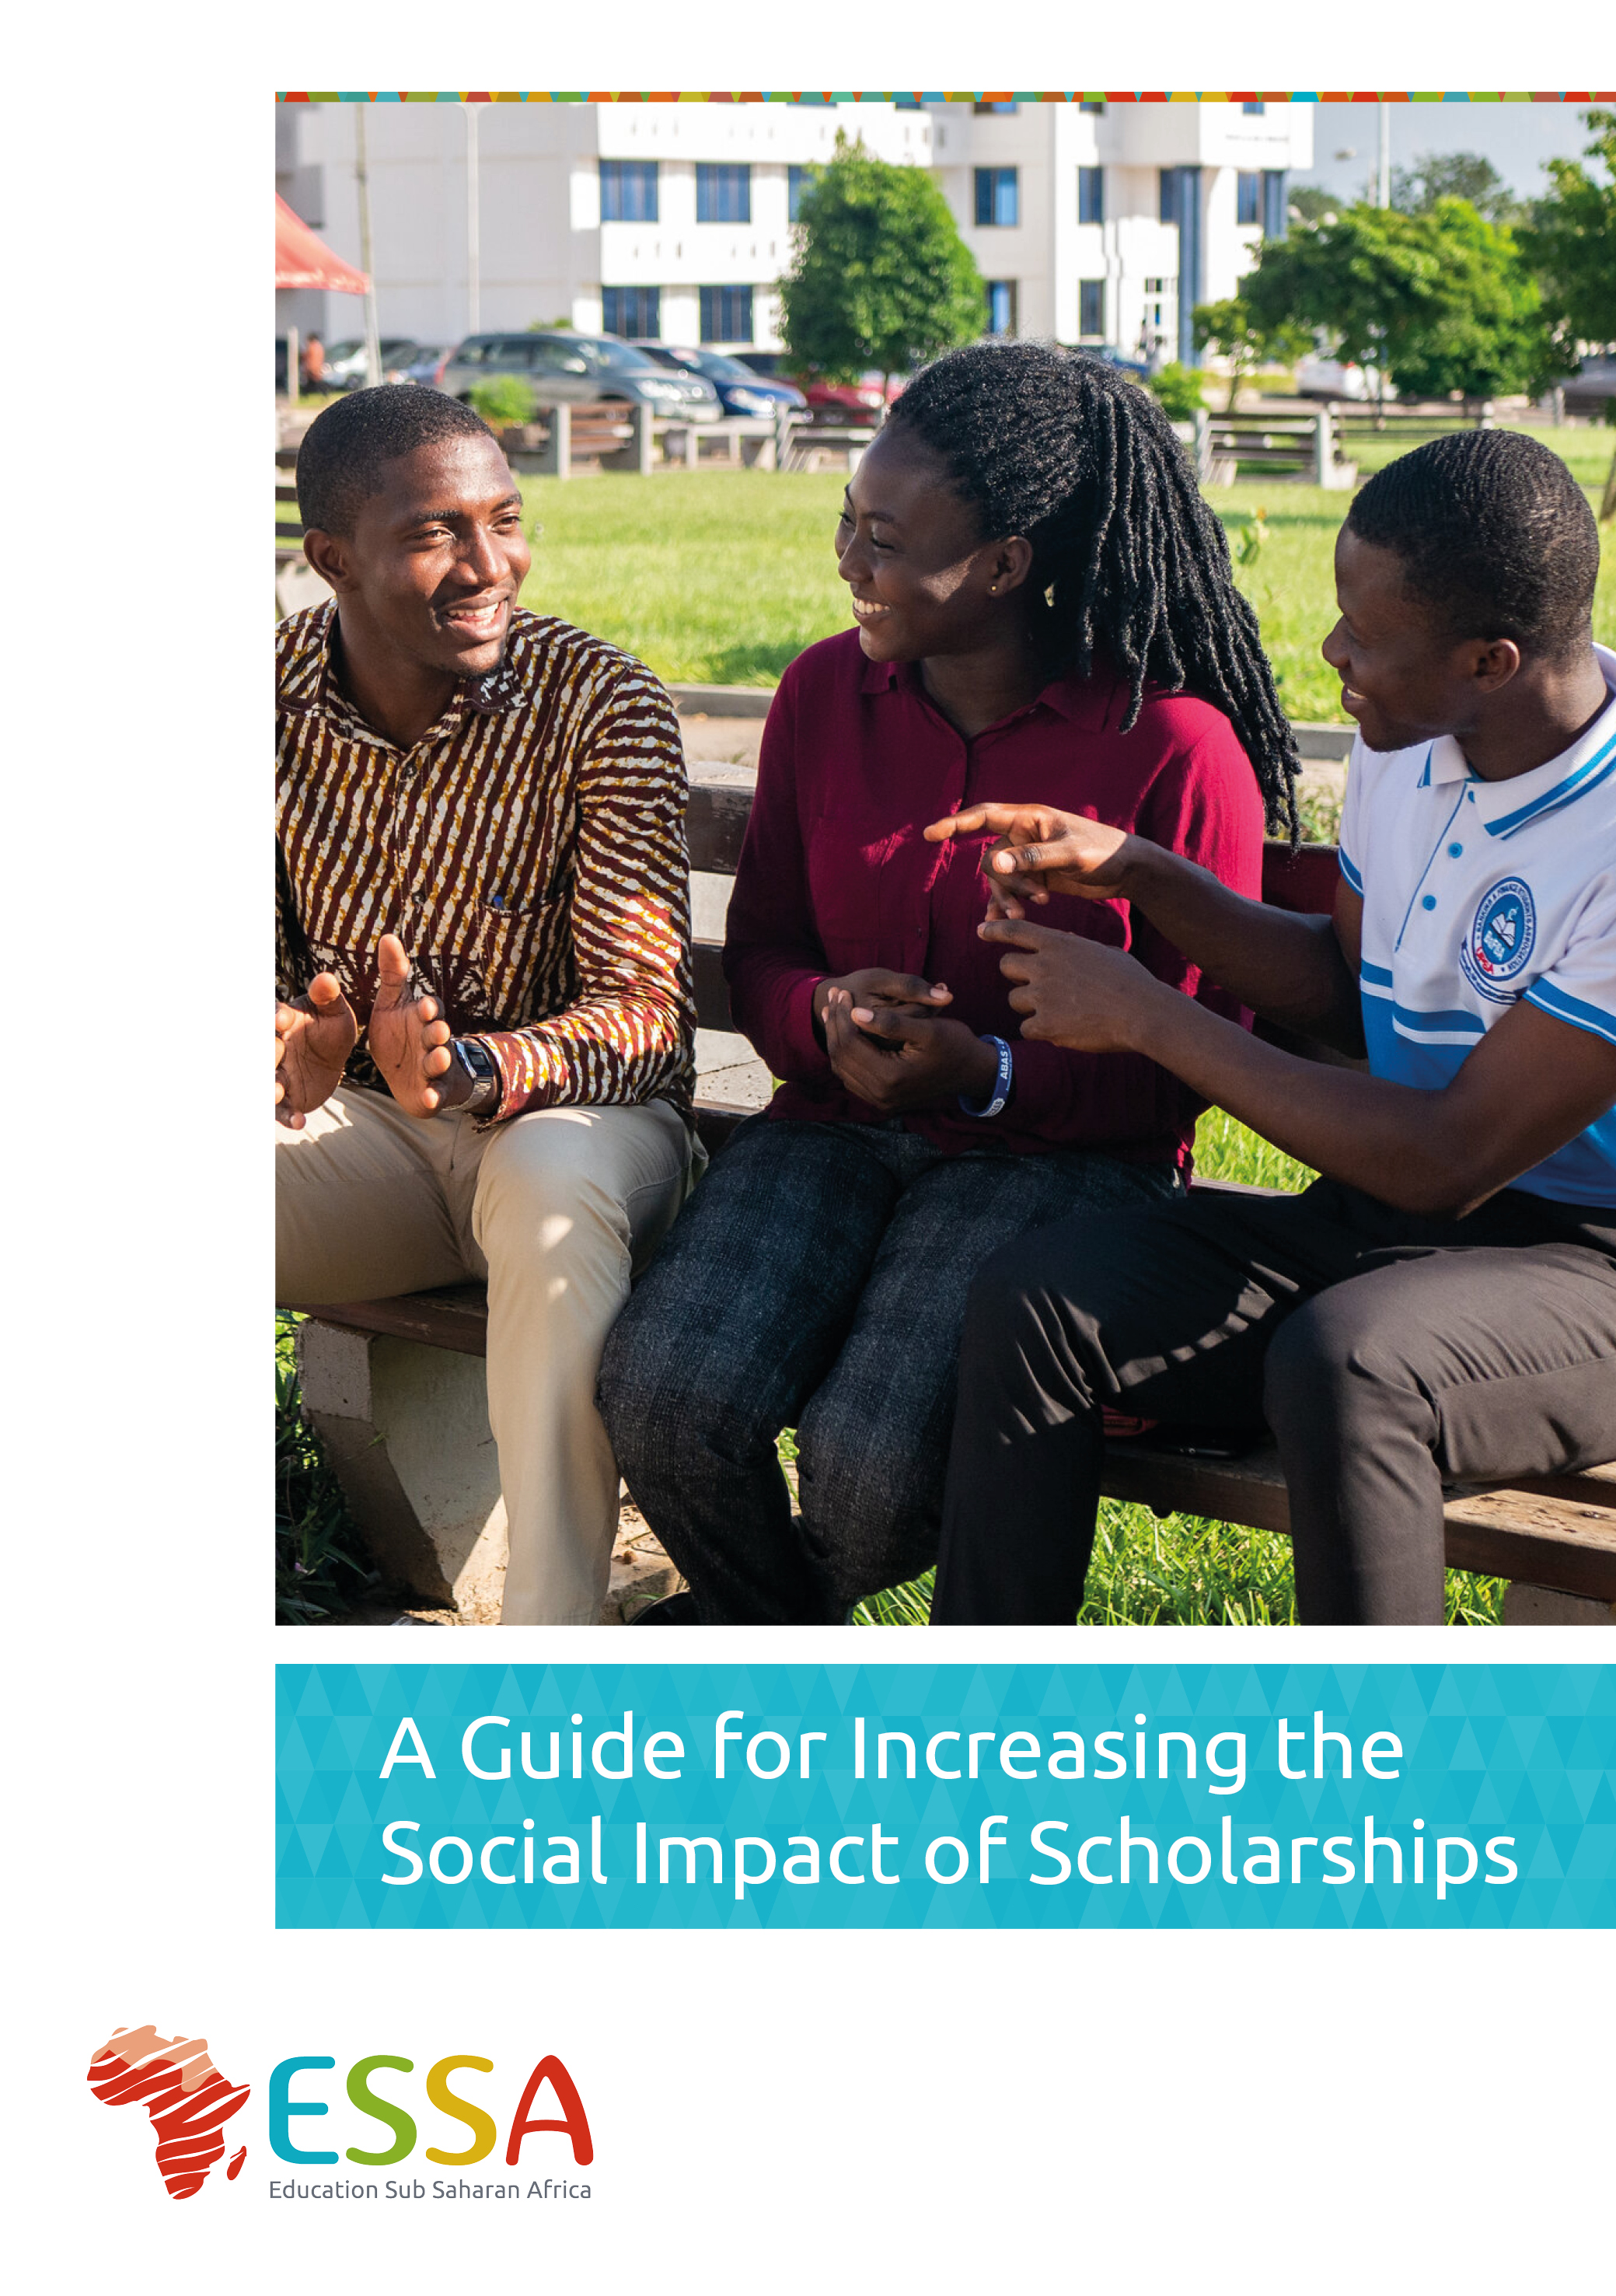 Download our Guide for Increasing the Social Impact of Scholarships